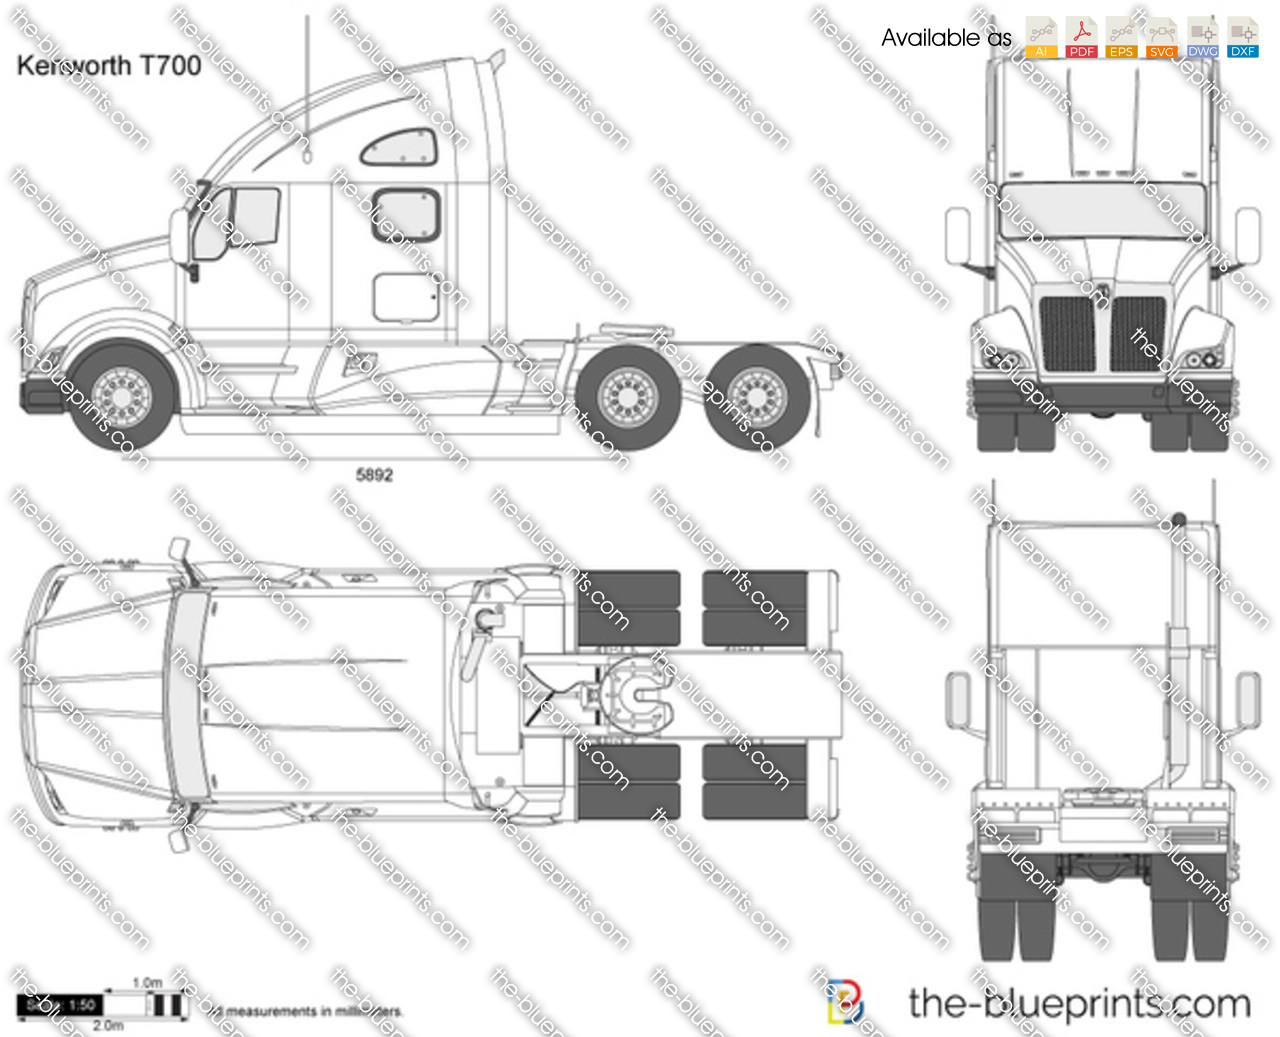 Kenworth T800 Cab Parts Diagram additionally International 4900 Electrical Diagram in addition Pneumatic Control Diagrams Wiring furthermore Ansul System Wiring Diagram additionally RepairGuideContent. on t800 kenworth fire truck